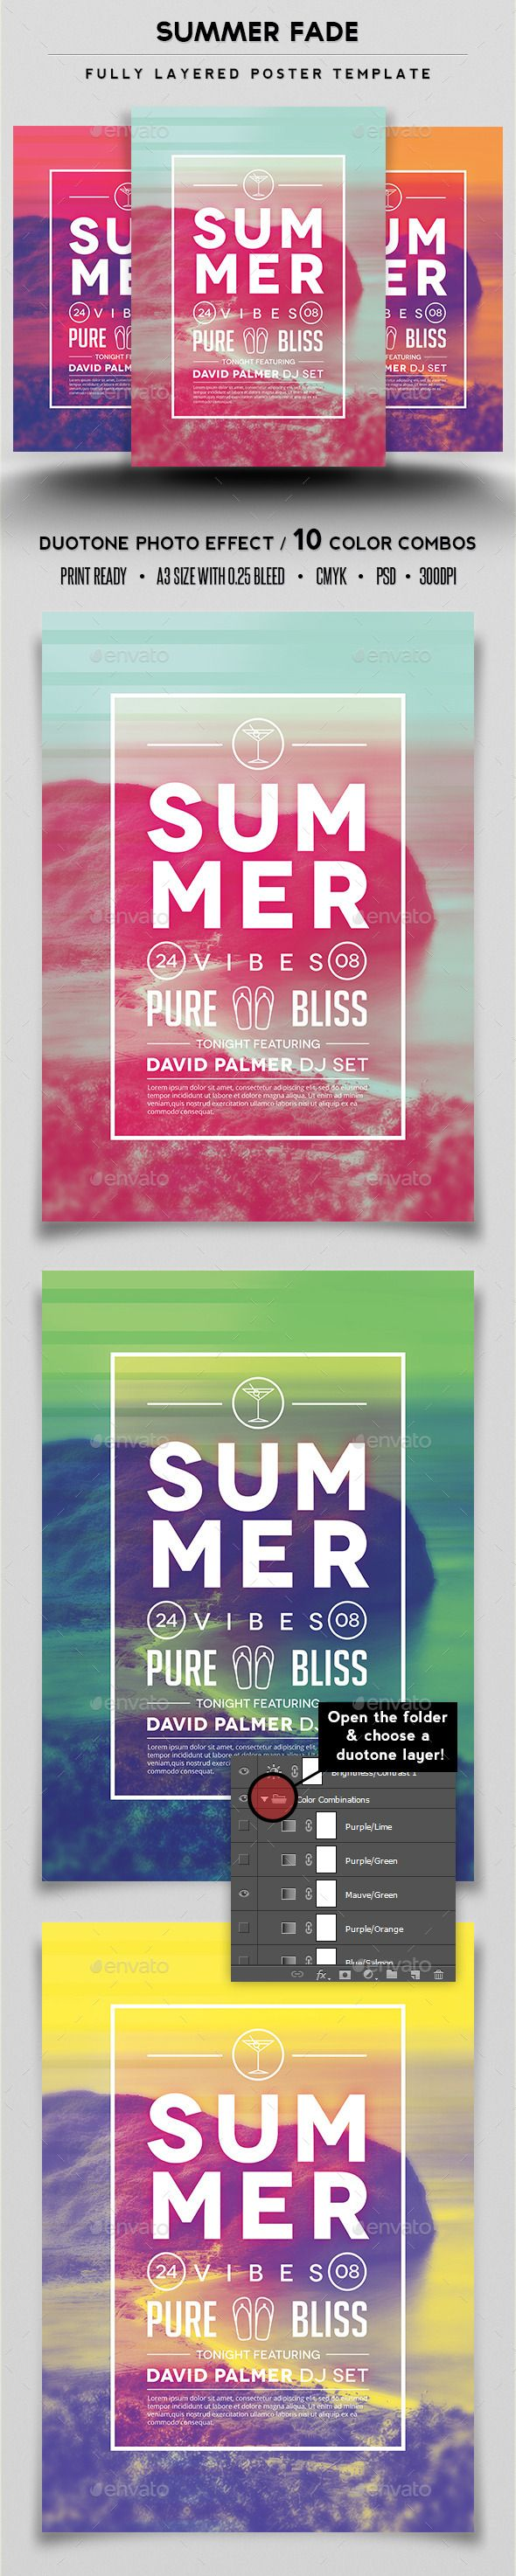 Poster design questionnaire - Poster Design Questionnaire Summer Fade Poster Template Download